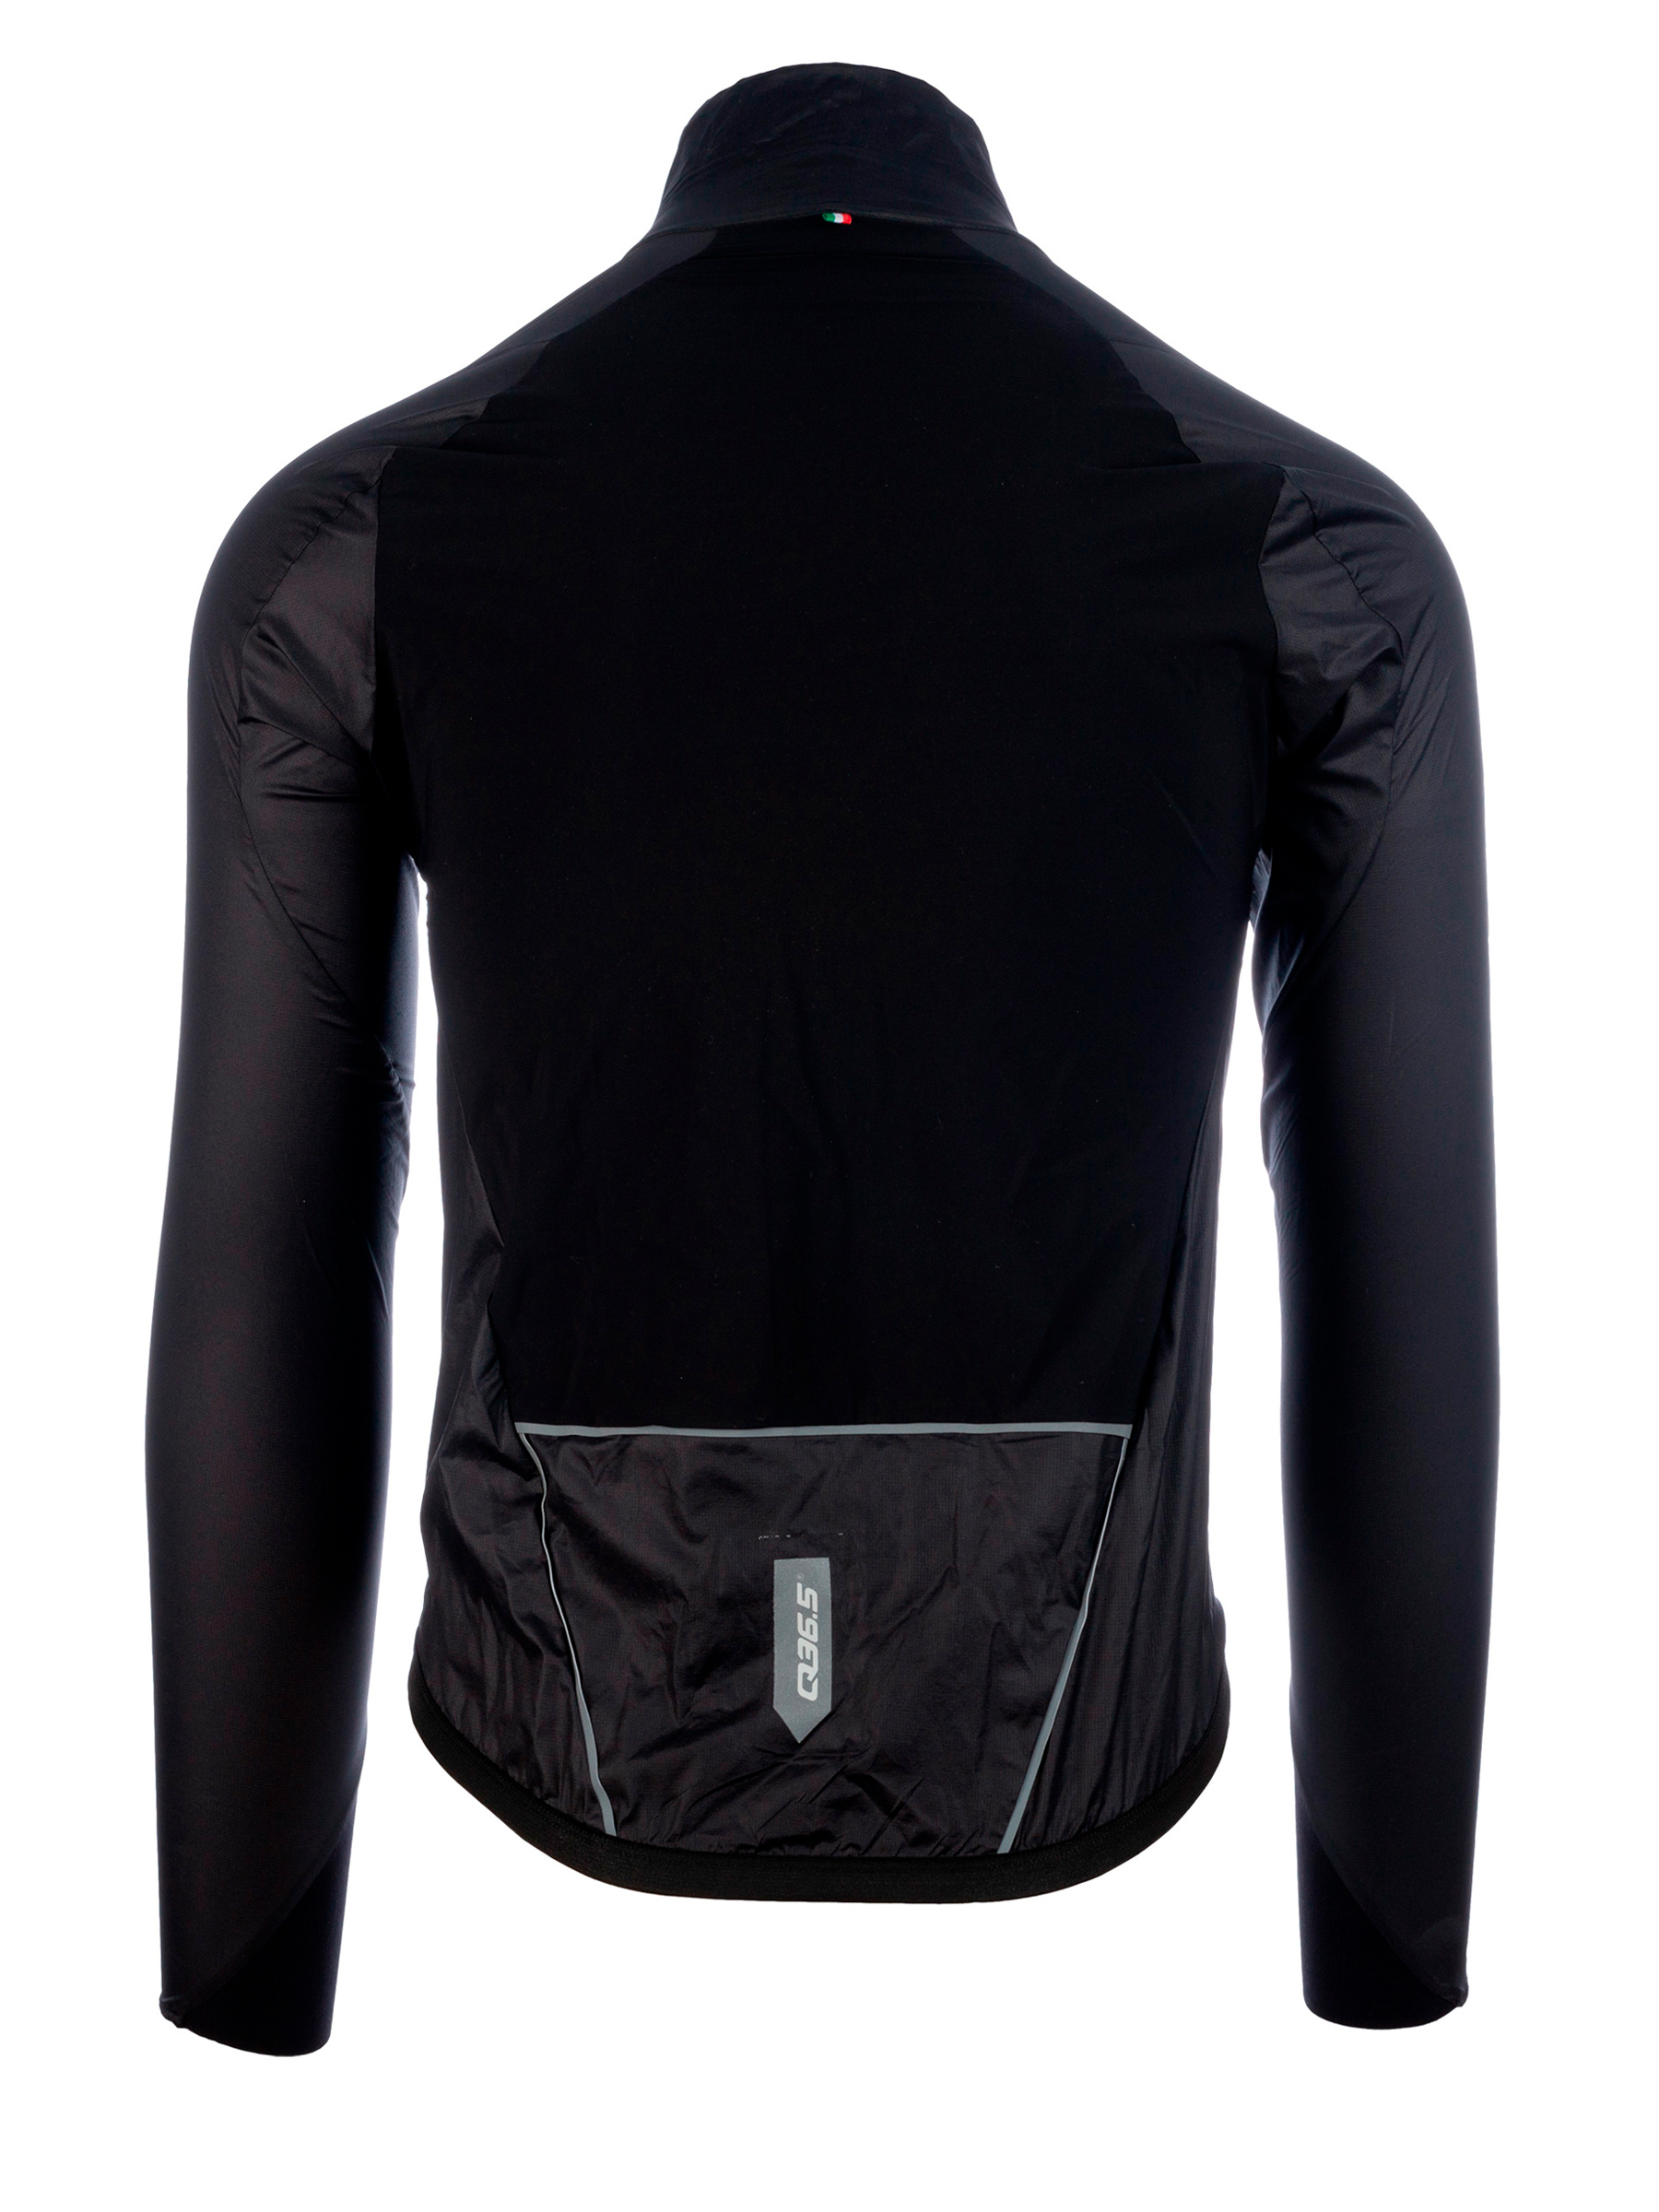 Veste coupe-vent AIR-Shell